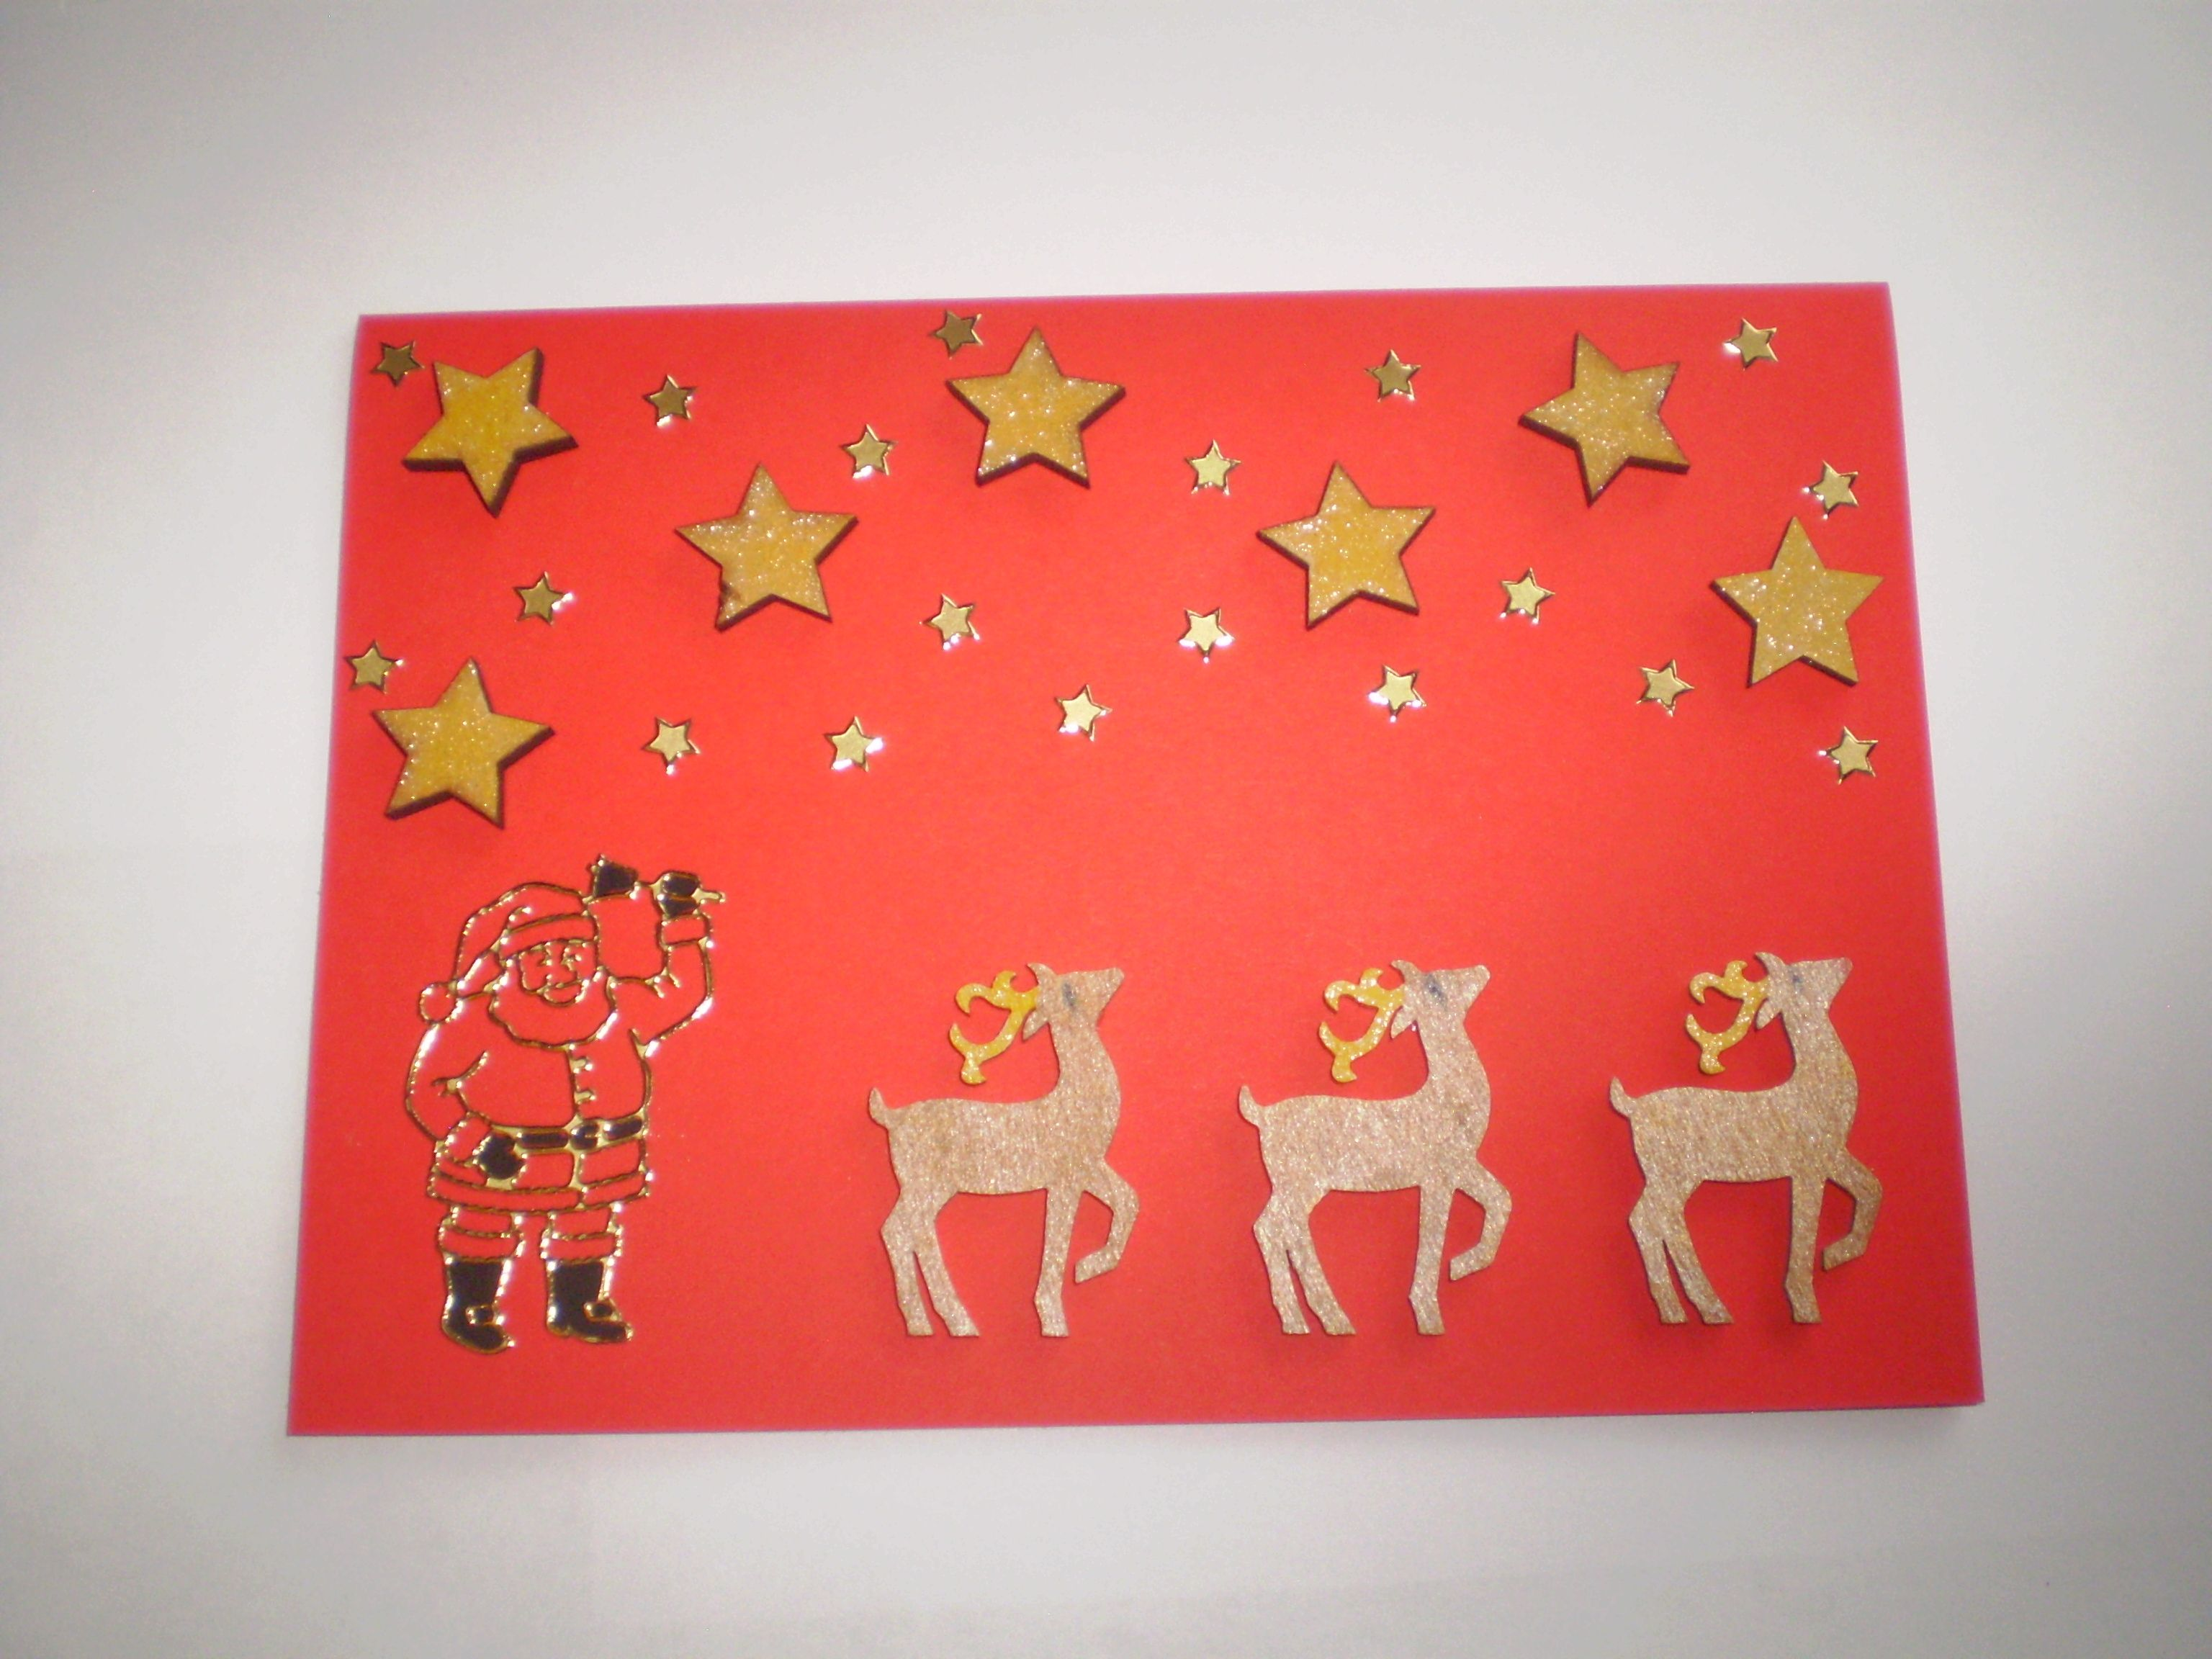 Christmas Card Crafts Ideas Part - 21: Red Card With Wooden Reindeer And Gold Stars With Santa - Christmas Card  Craft Ideas Homemade